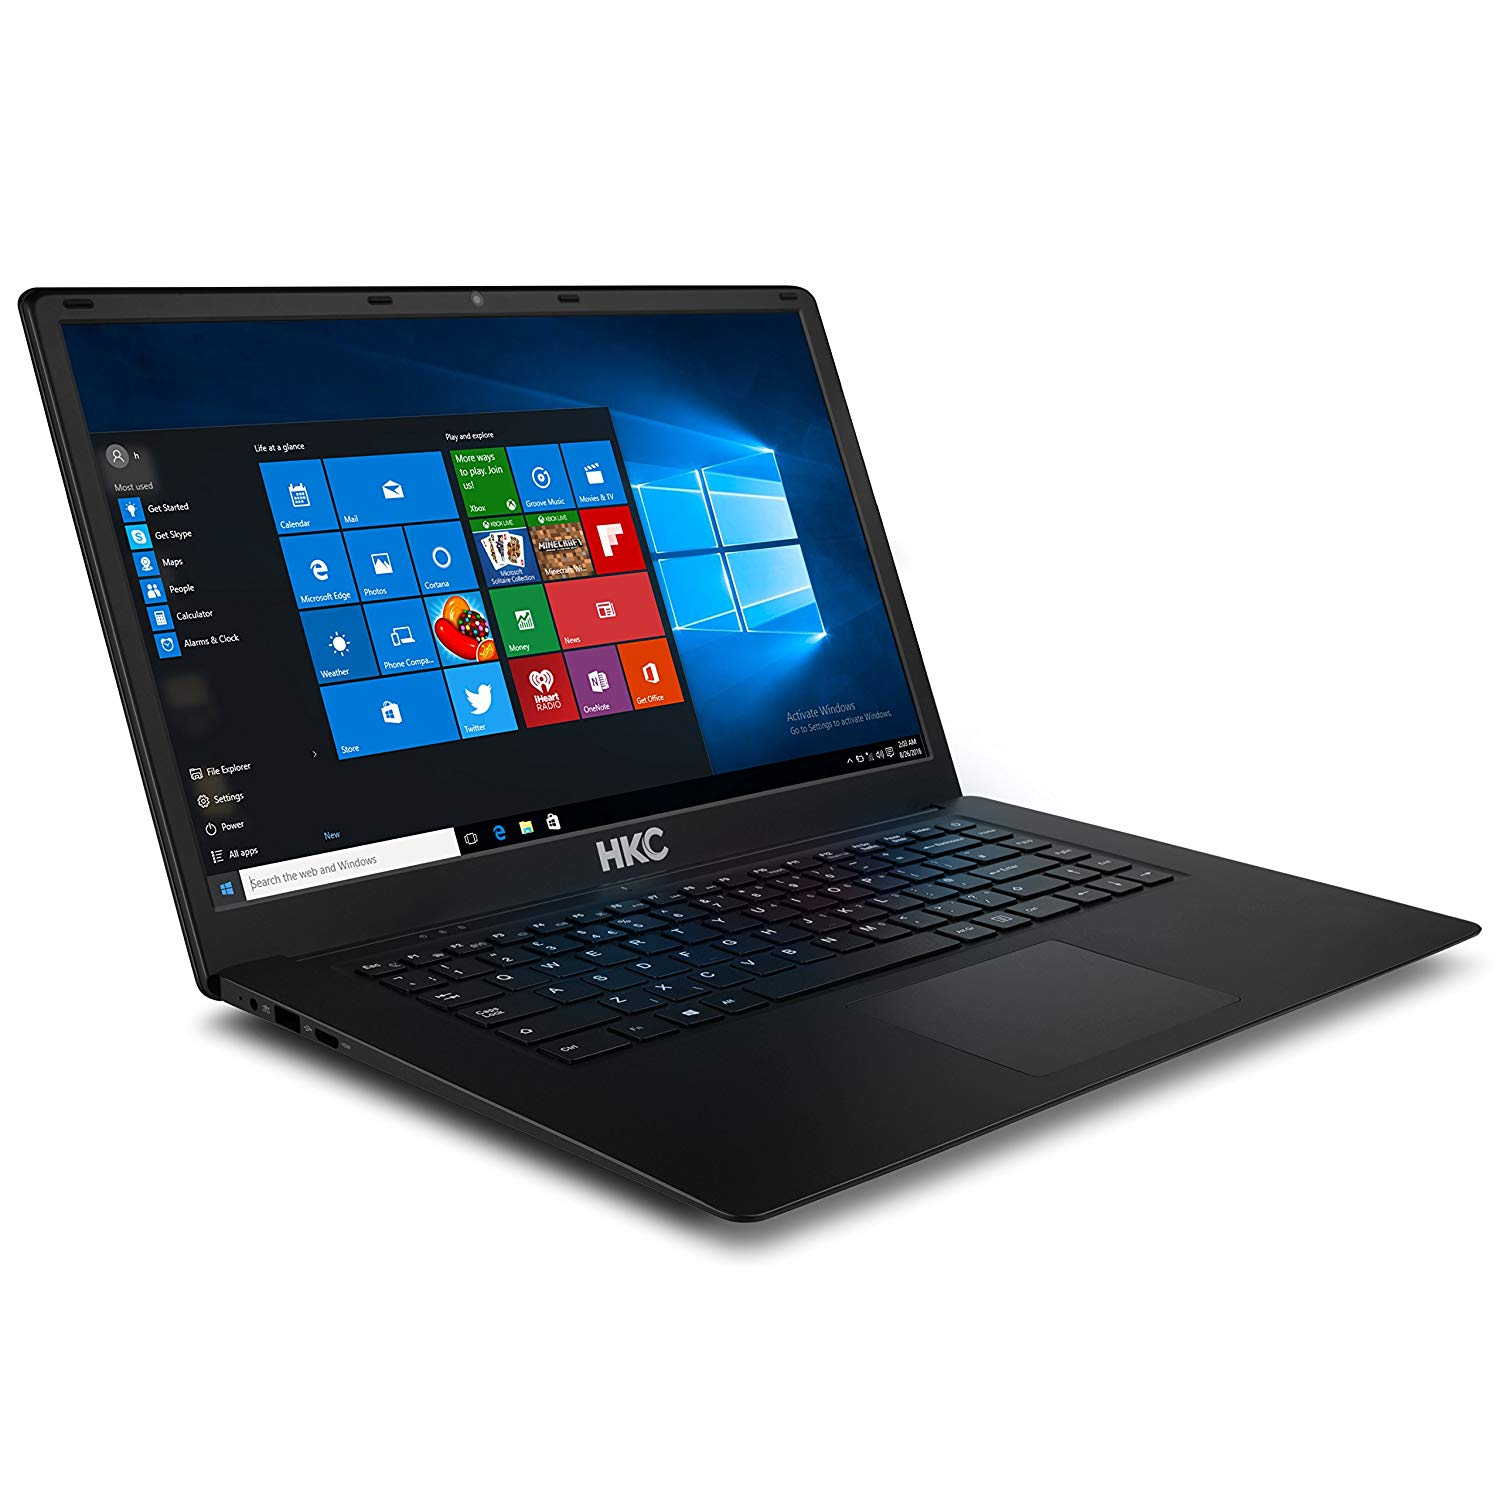 HKC N16CA 39,5 cm (15,6 Zoll) Notebook (Intel Apollo Lake 1,1 GHz, 6 GB DDR3L, 32 GB eMMC, Intel HD Graphics 5000, HDMI, Webcam, Bluetooth, USB 3.0, WLAN, Windows 10) schwarz